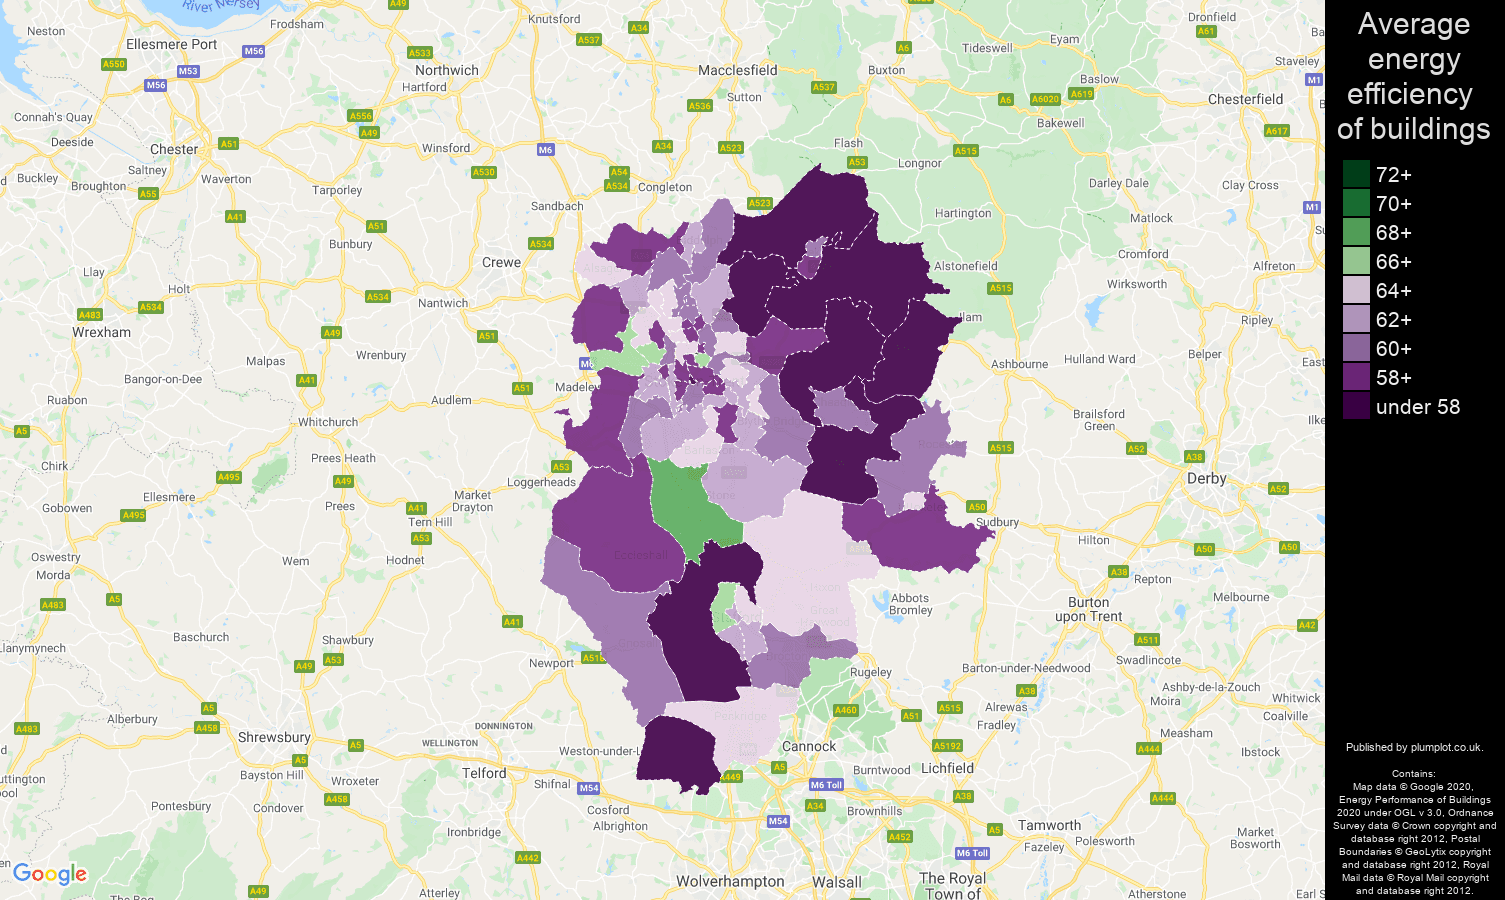 Stoke on Trent map of energy efficiency of houses